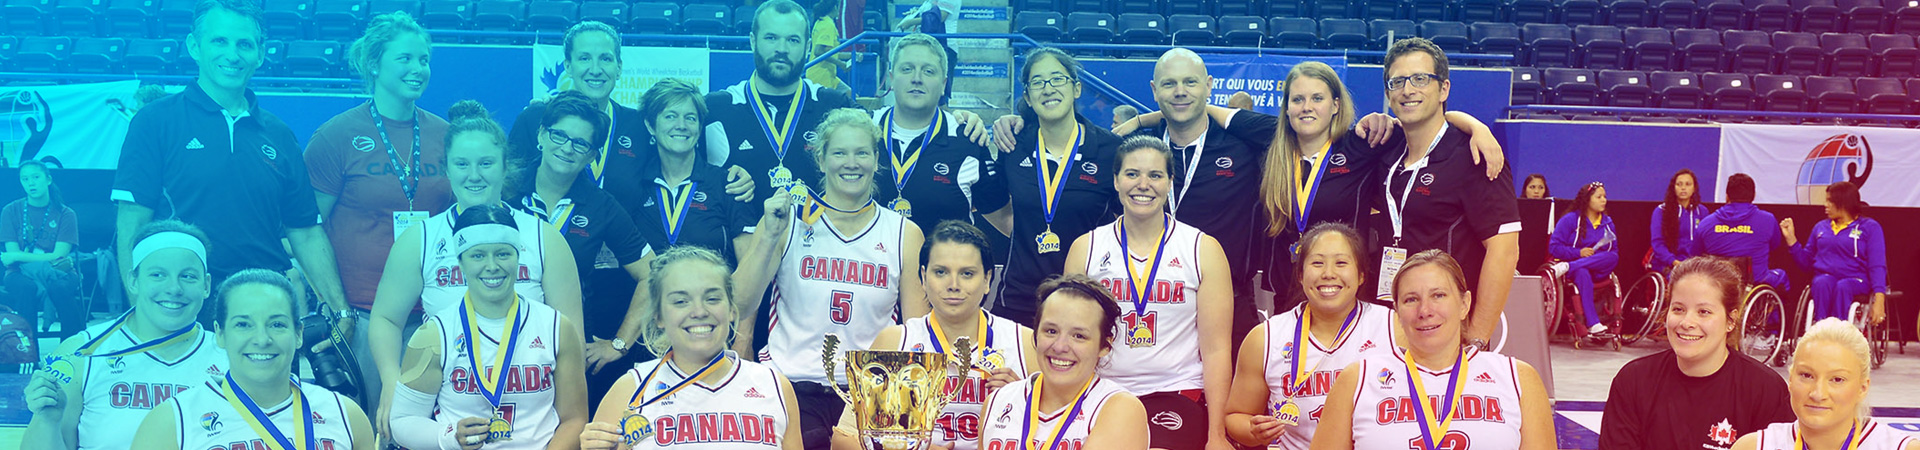 Senior Women's Wheelchair Basketball